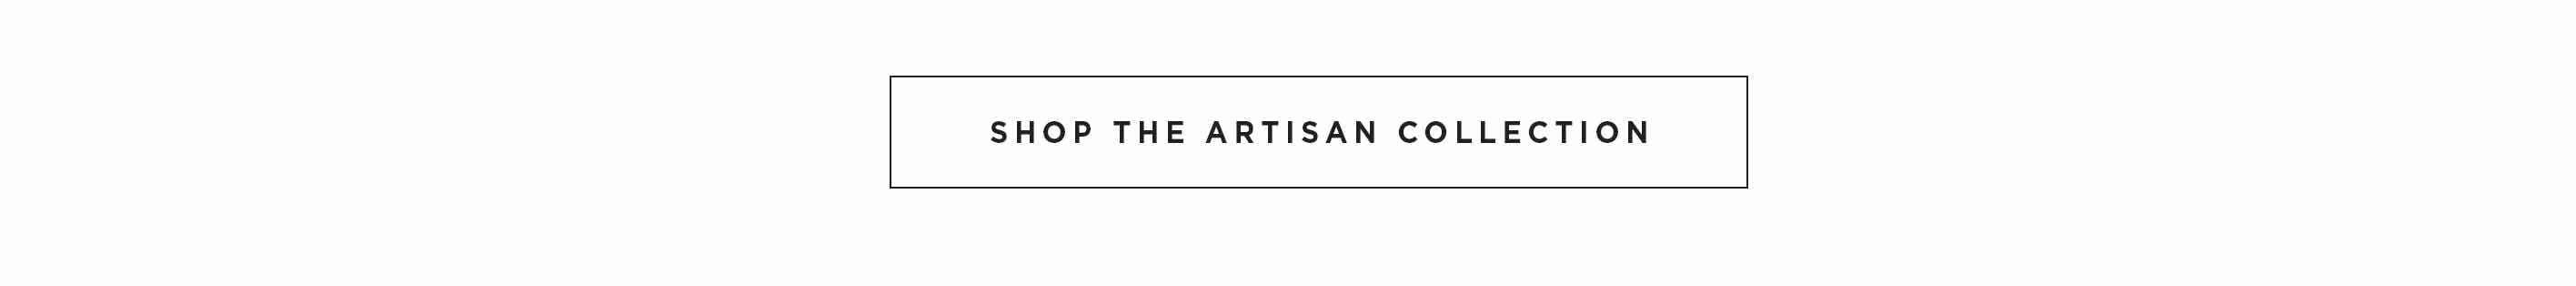 Shop the Artisan Collection